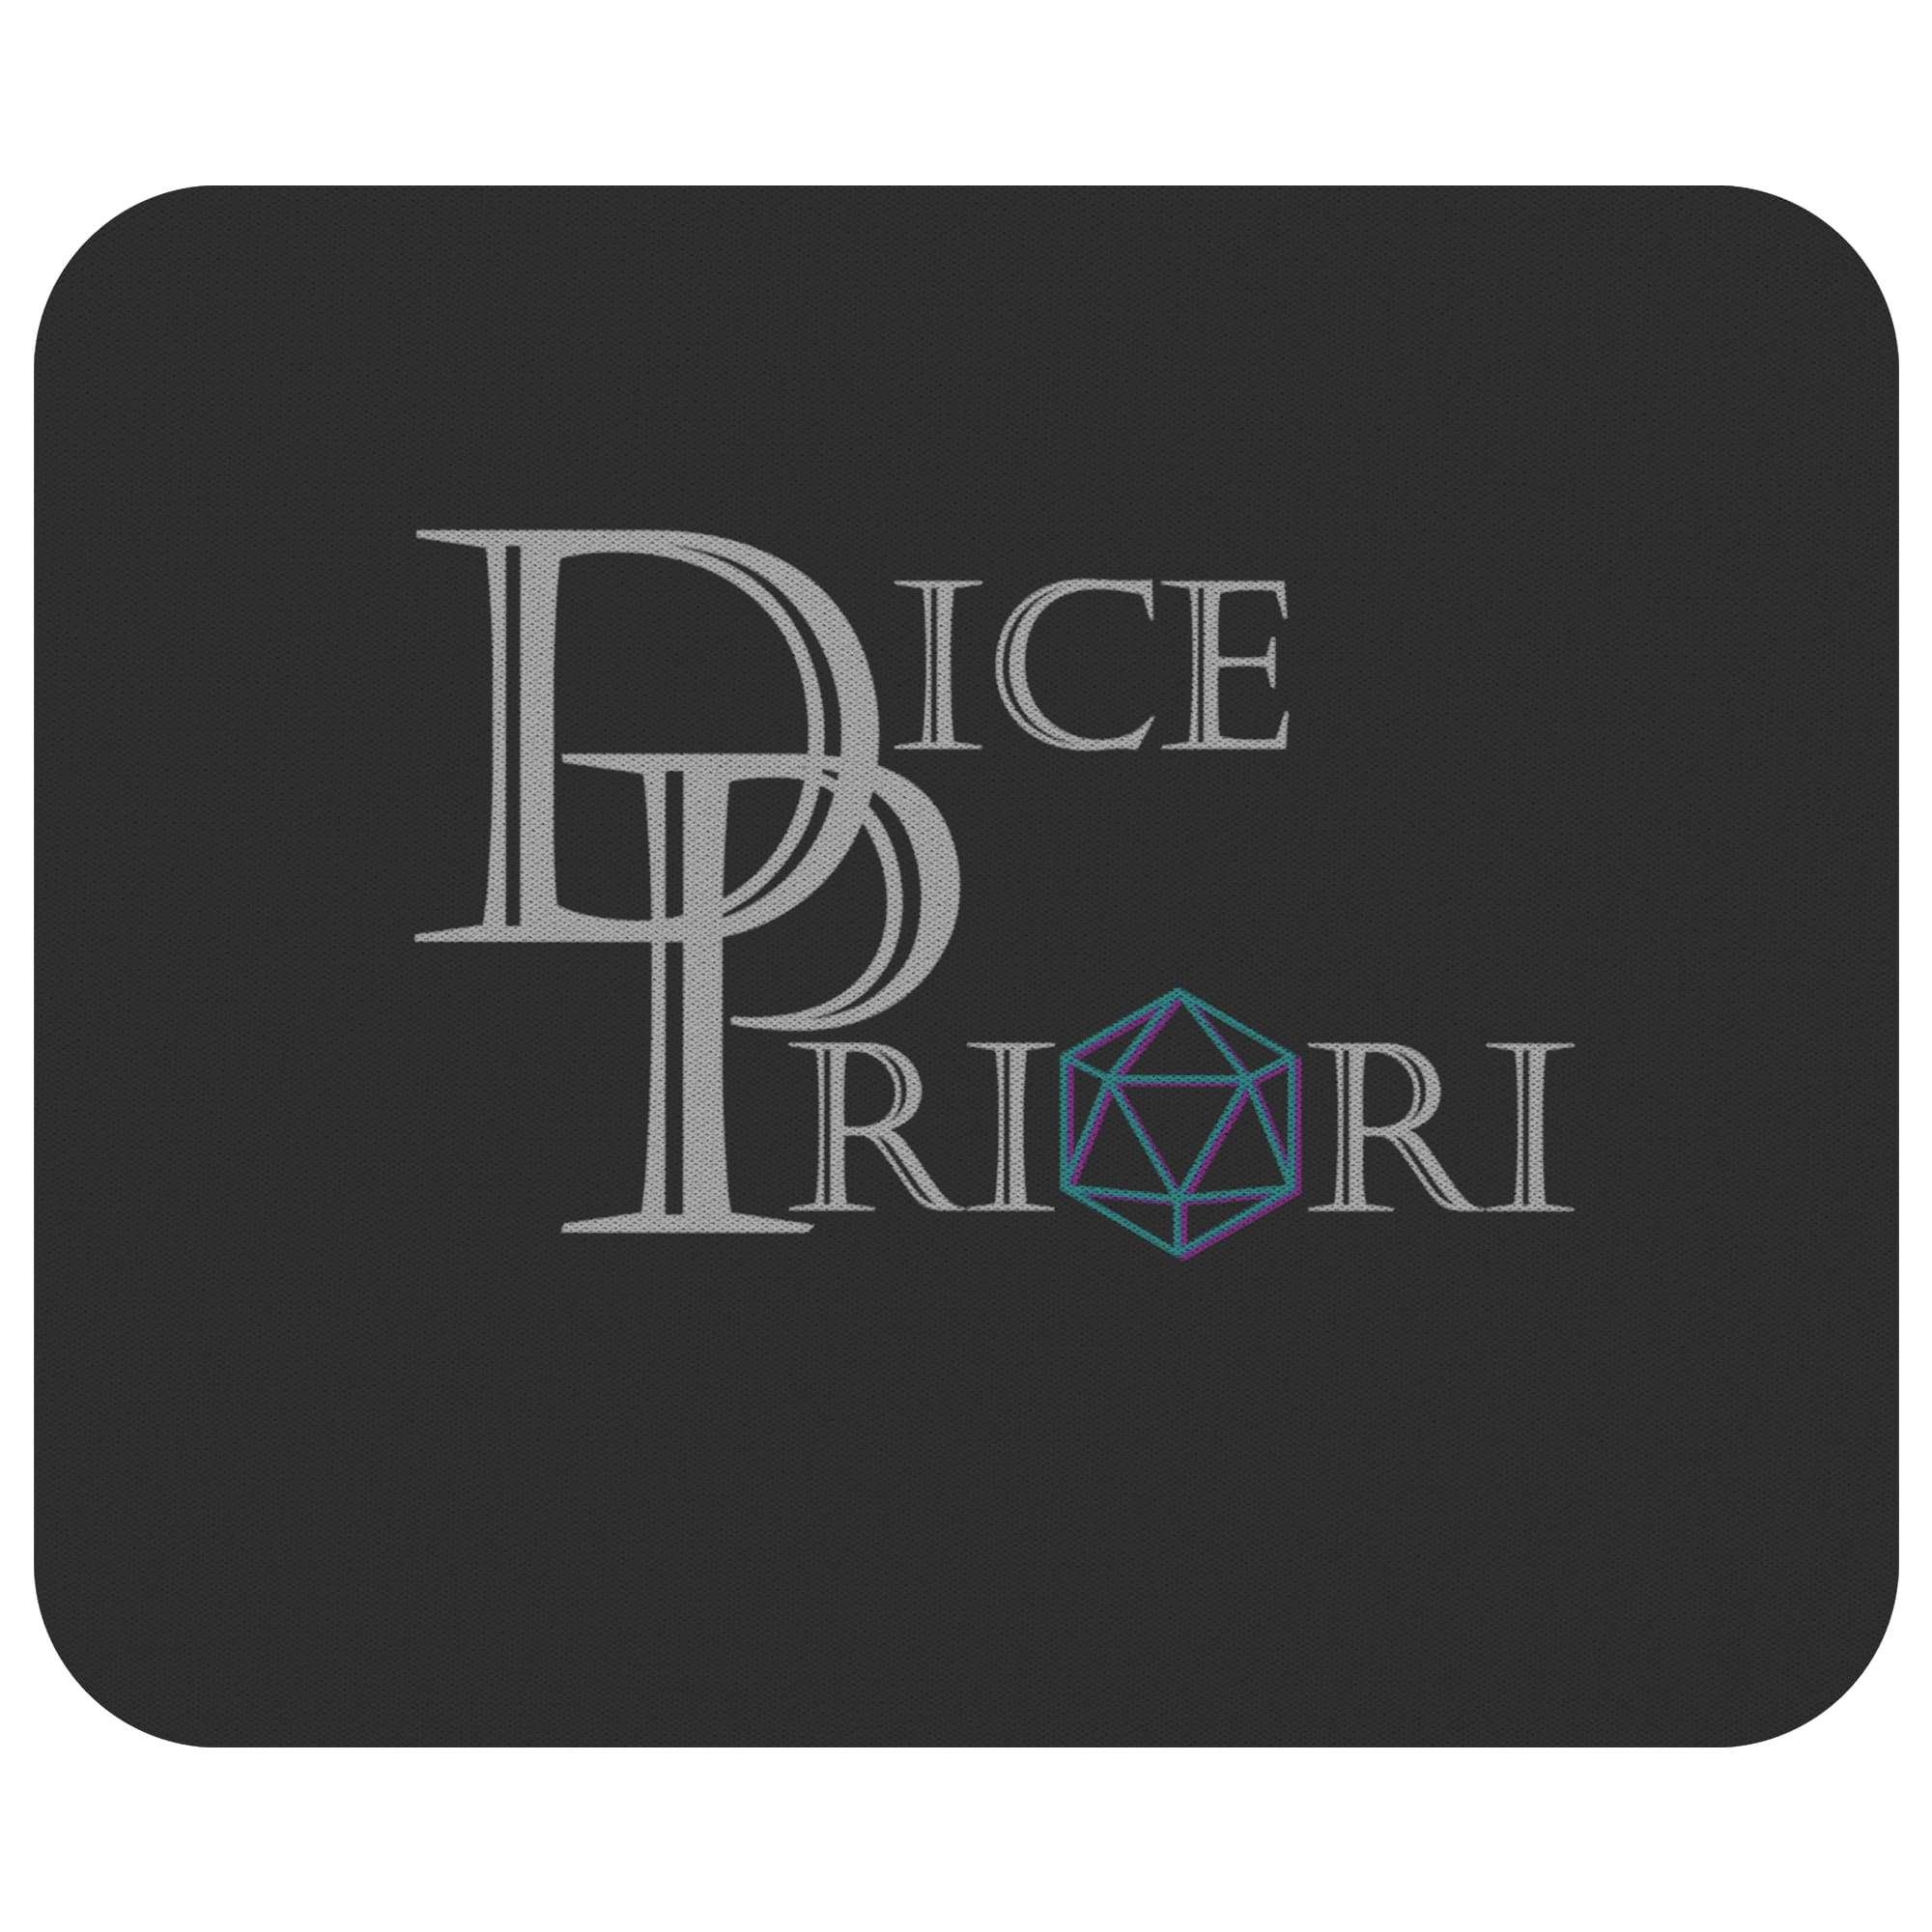 Dice Priori Mousepad (5 Styles) - DP-CTLo-Mou - Mousepads